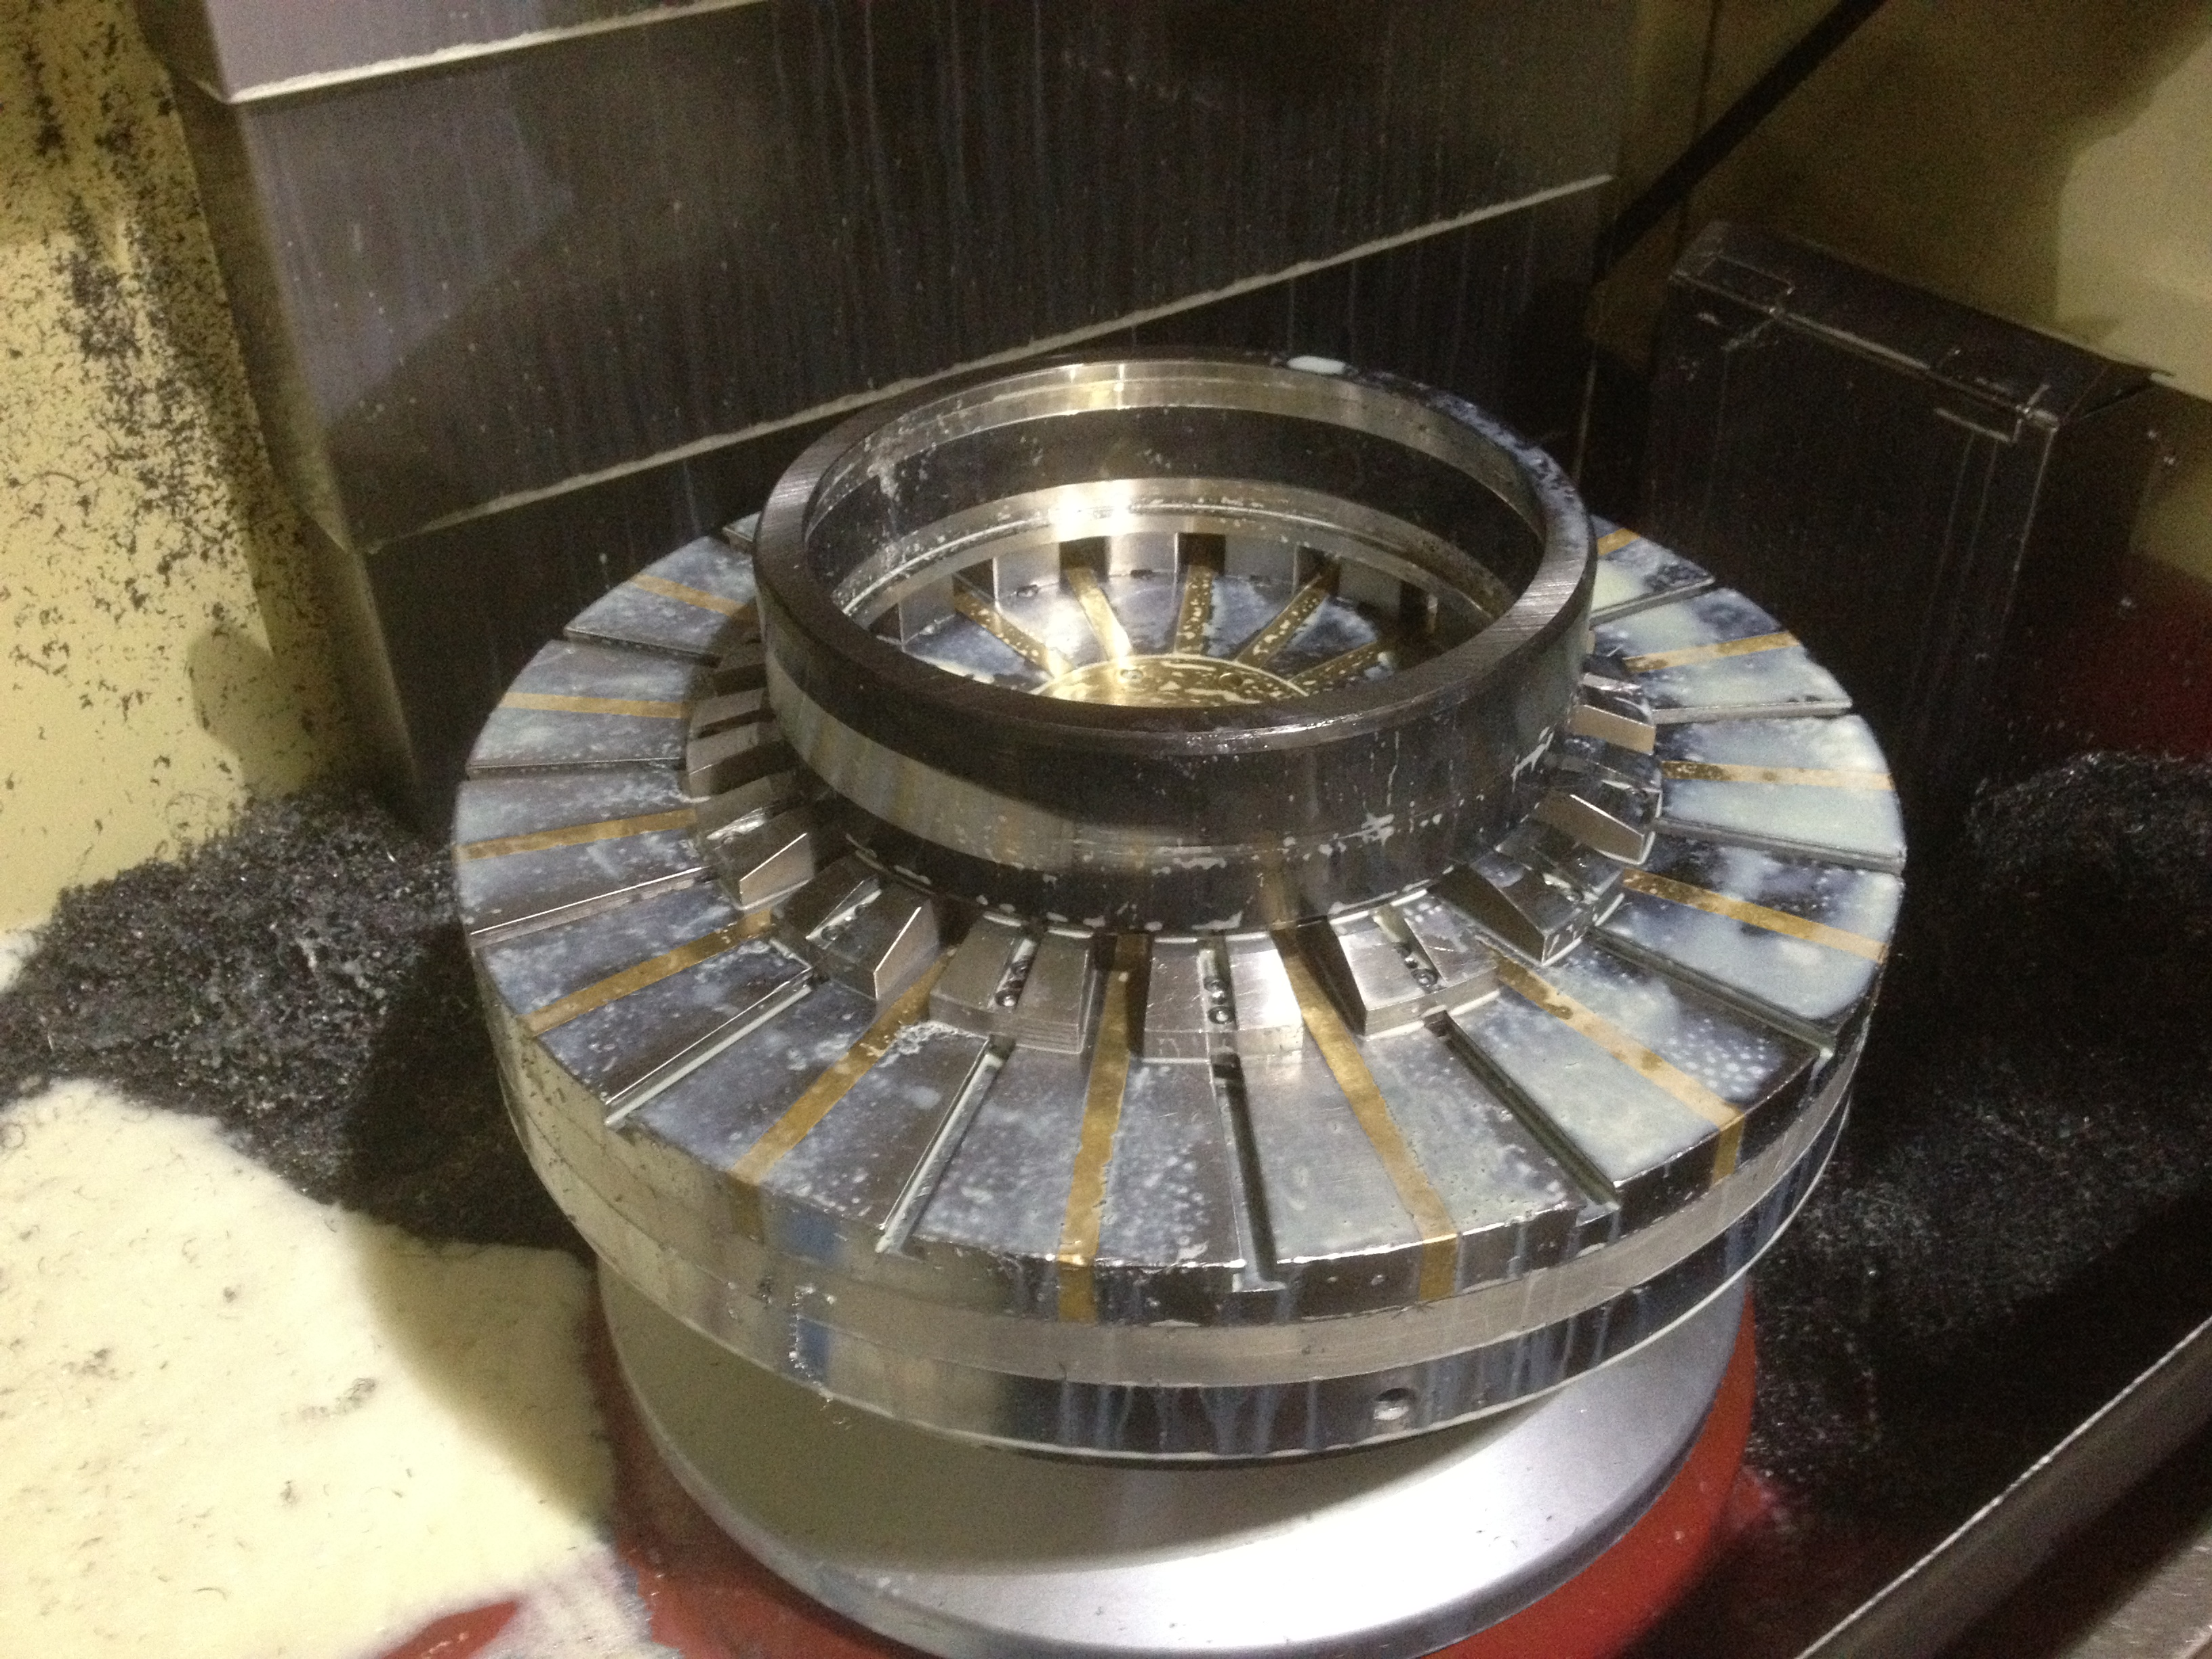 slipway inner lathe use outer rings on i example for correct the and with making to remove diameter in enough drill rod material